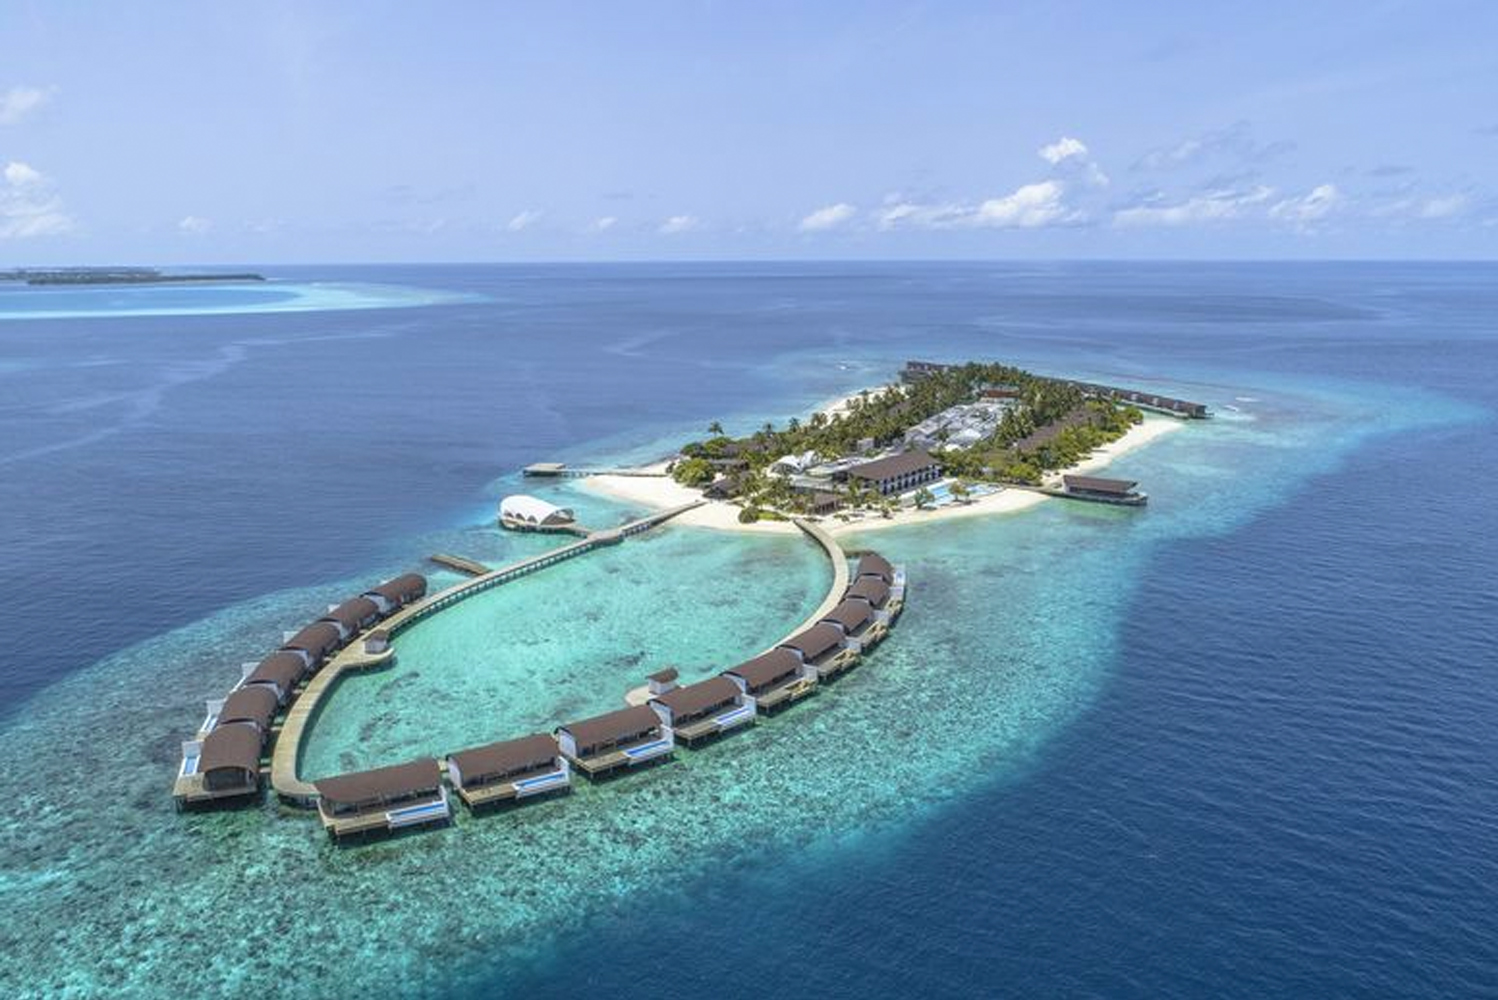 When it opens, The Westin Maldives Miriandhoo Resort will have 70 villas and suites, 41 on island and 29 over the water.